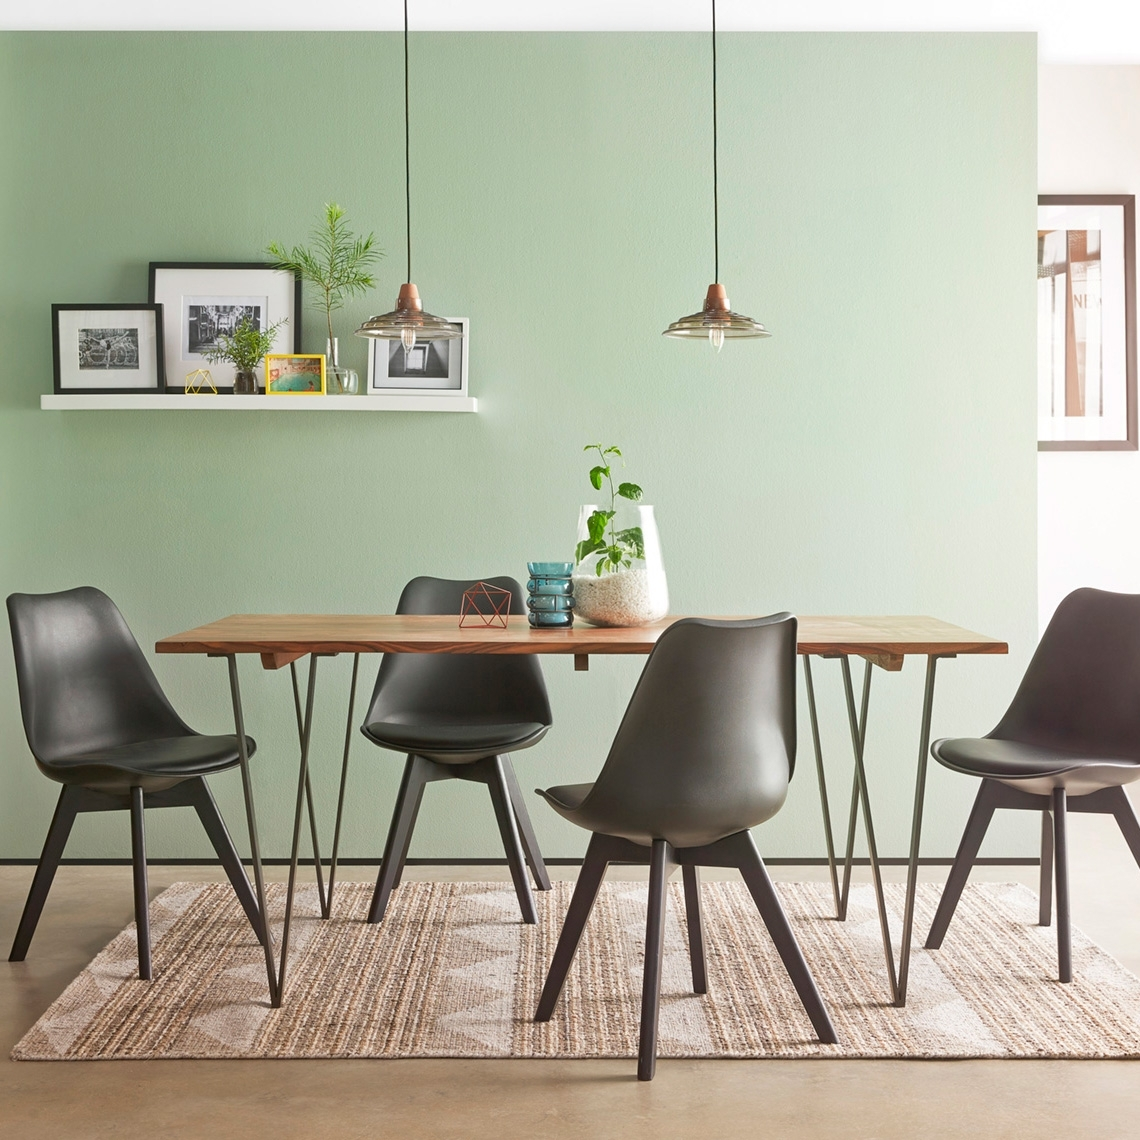 How To Find The Perfect Dining Table – Freedom Intended For Recent Wyatt Dining Tables (Image 7 of 20)